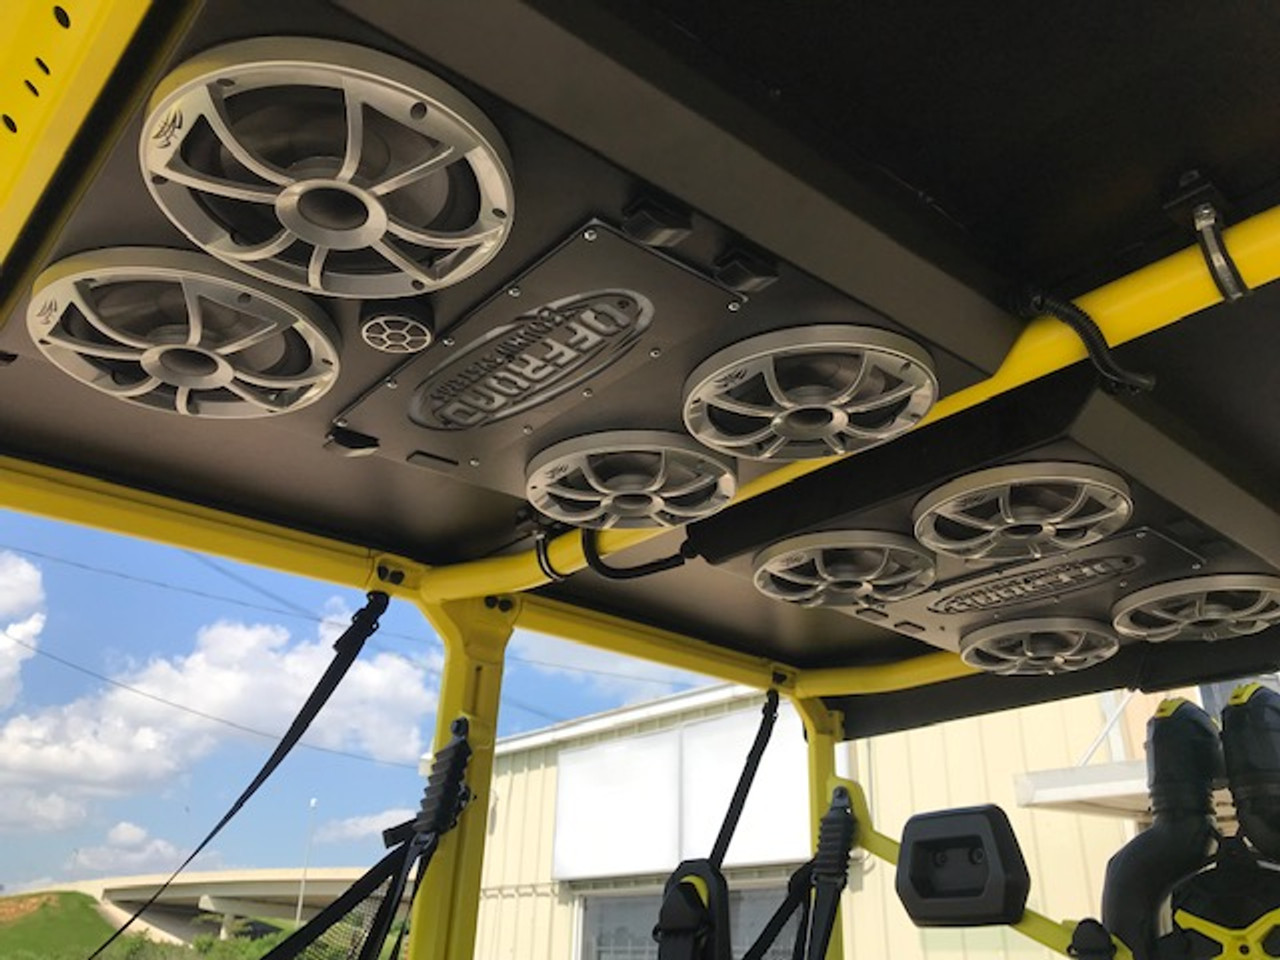 This is an 8 speaker roof setup, the 6 speaker setup will have 4 speakers in the rear section and 2 in the front.